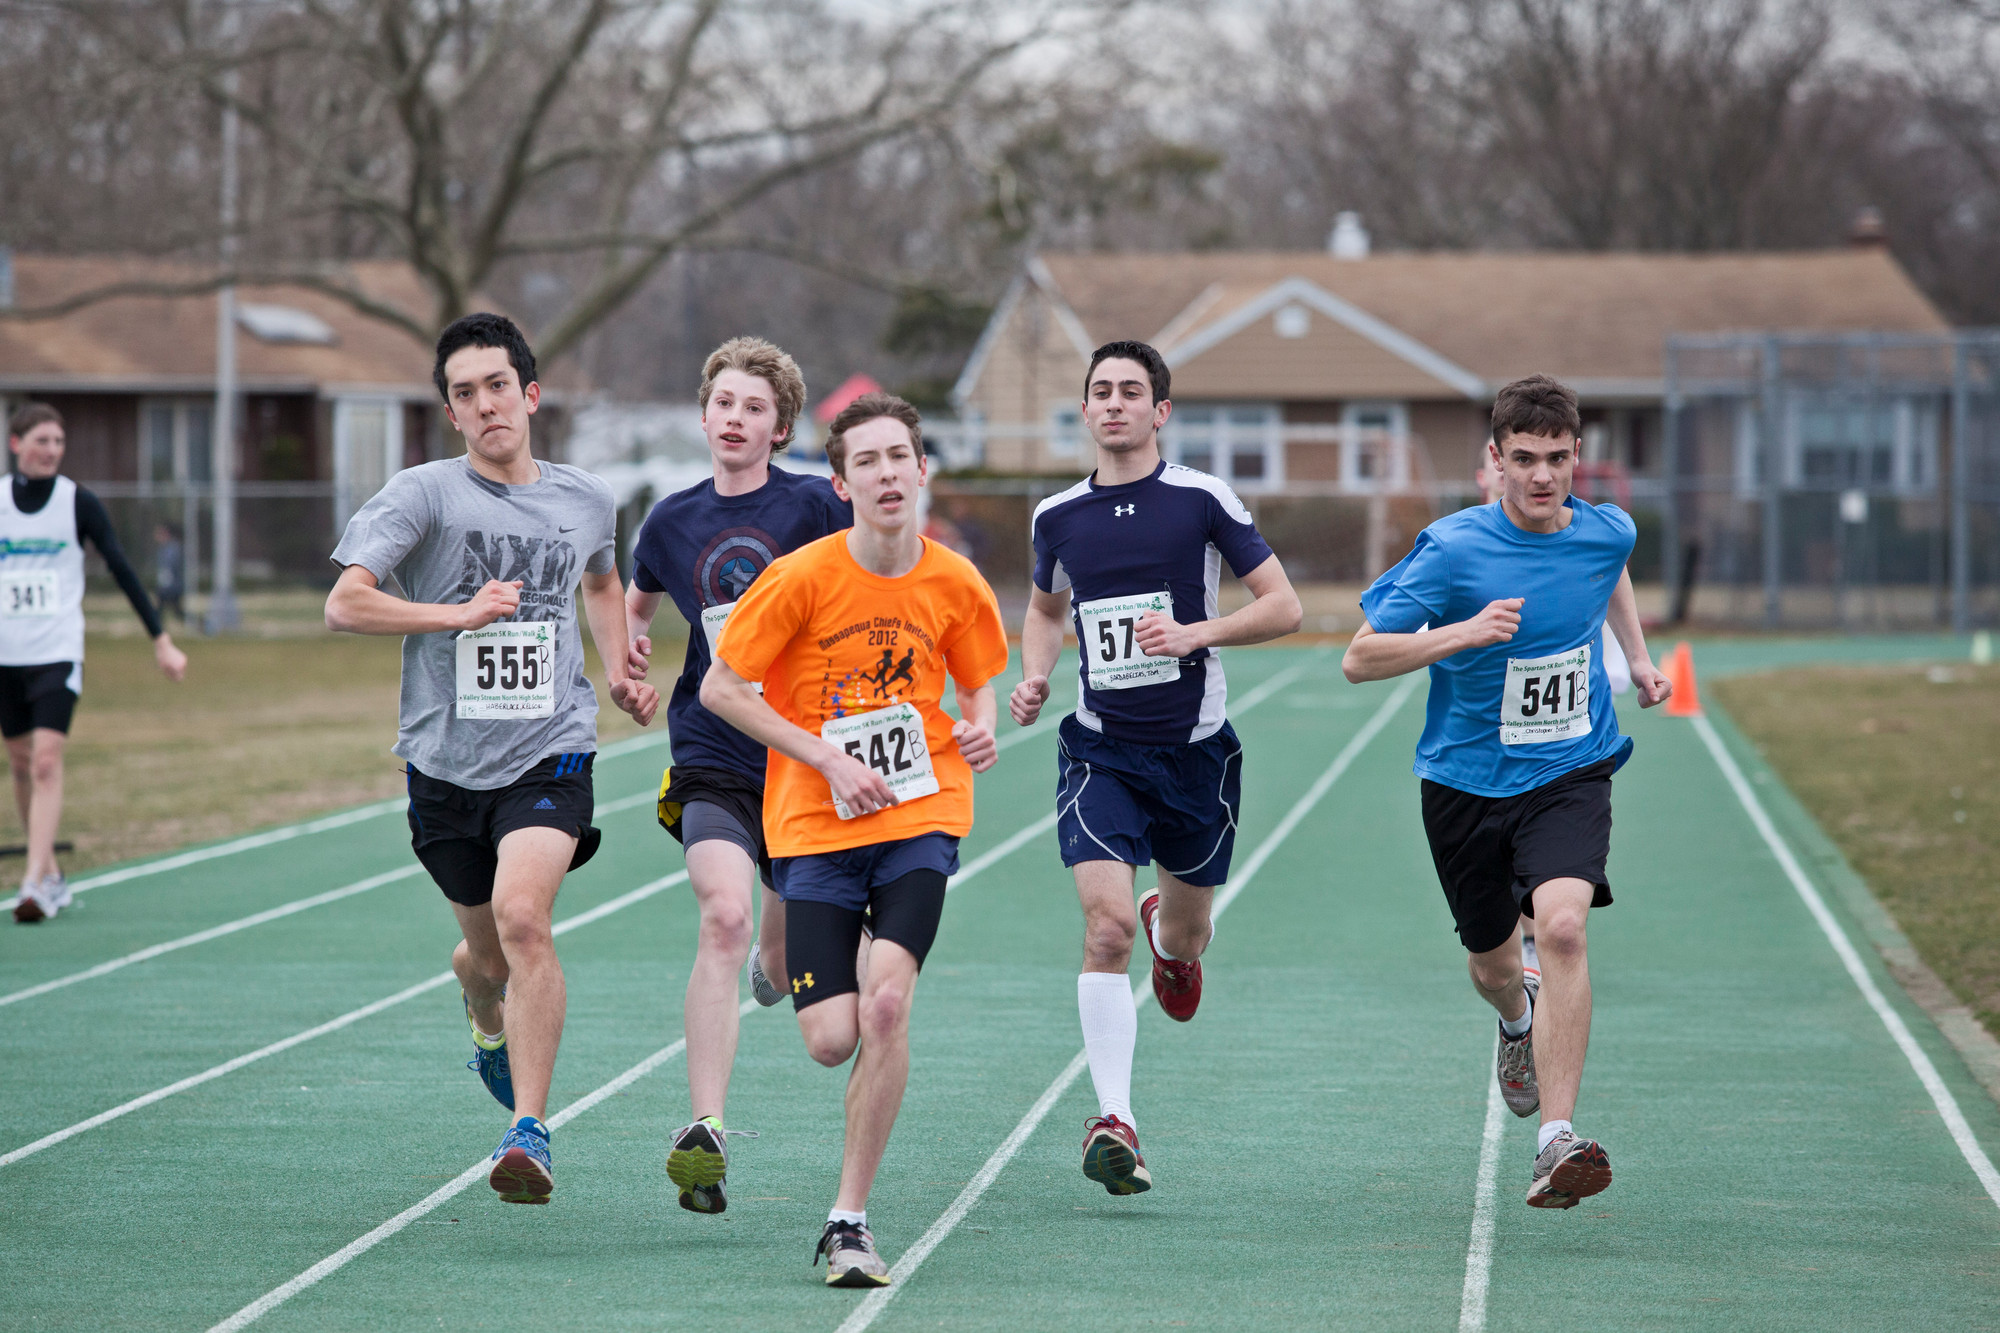 Valley Stream North High School hosted its fourth annual Spartan 5K race last Saturday morning to raise money for the National Multiple Sclerosis Foundation. Among the runners were, from left, Kelson Haberlack, 18, Joe Tesariero, 14, Jimmy Field, 16, Tom Bardabelias, 19, and Christopher Bonetti, 17.